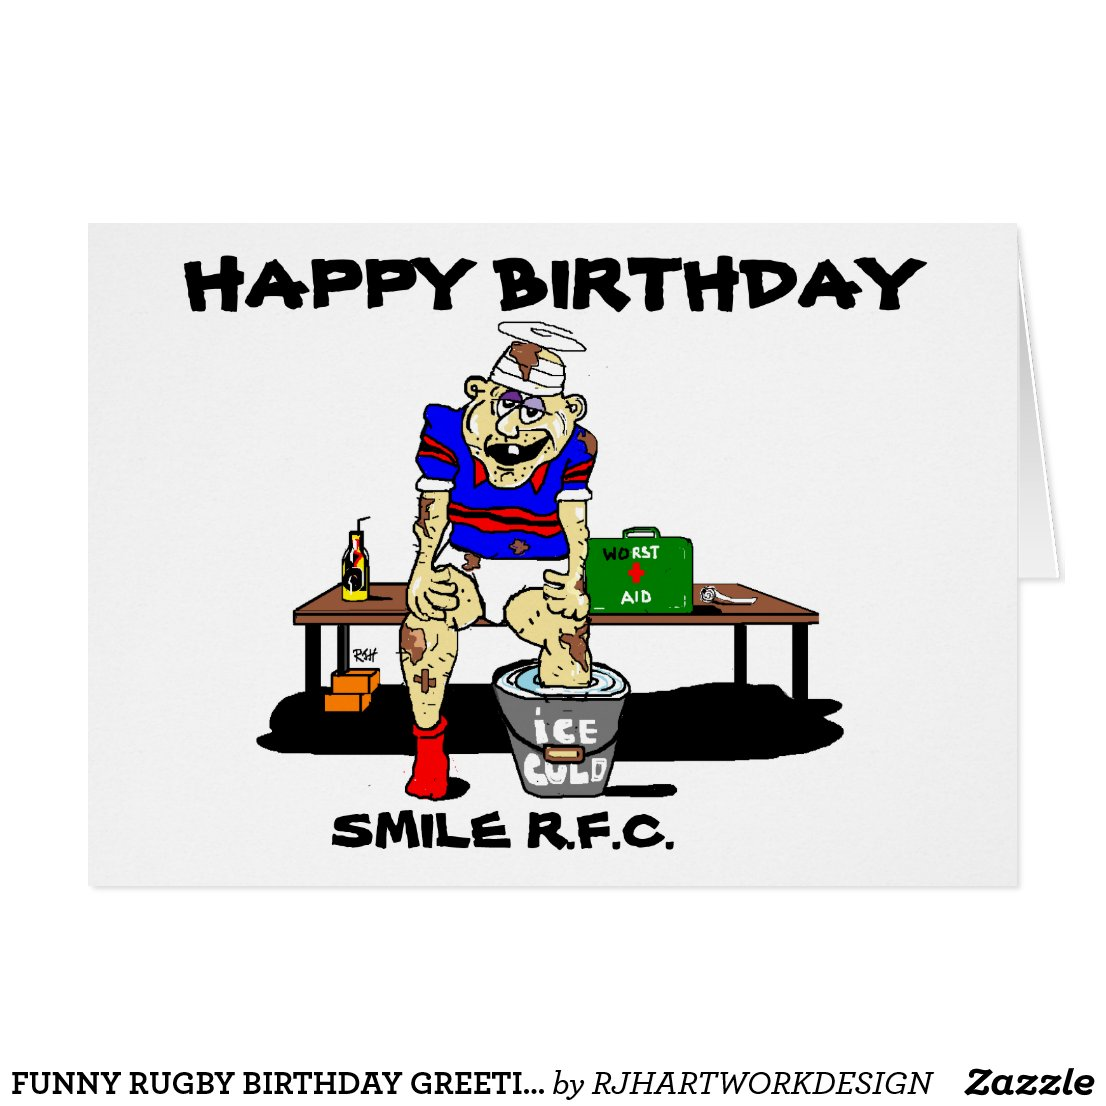 Connu Carte Anniversaire Humour Rugby | coleteremelly site CW57